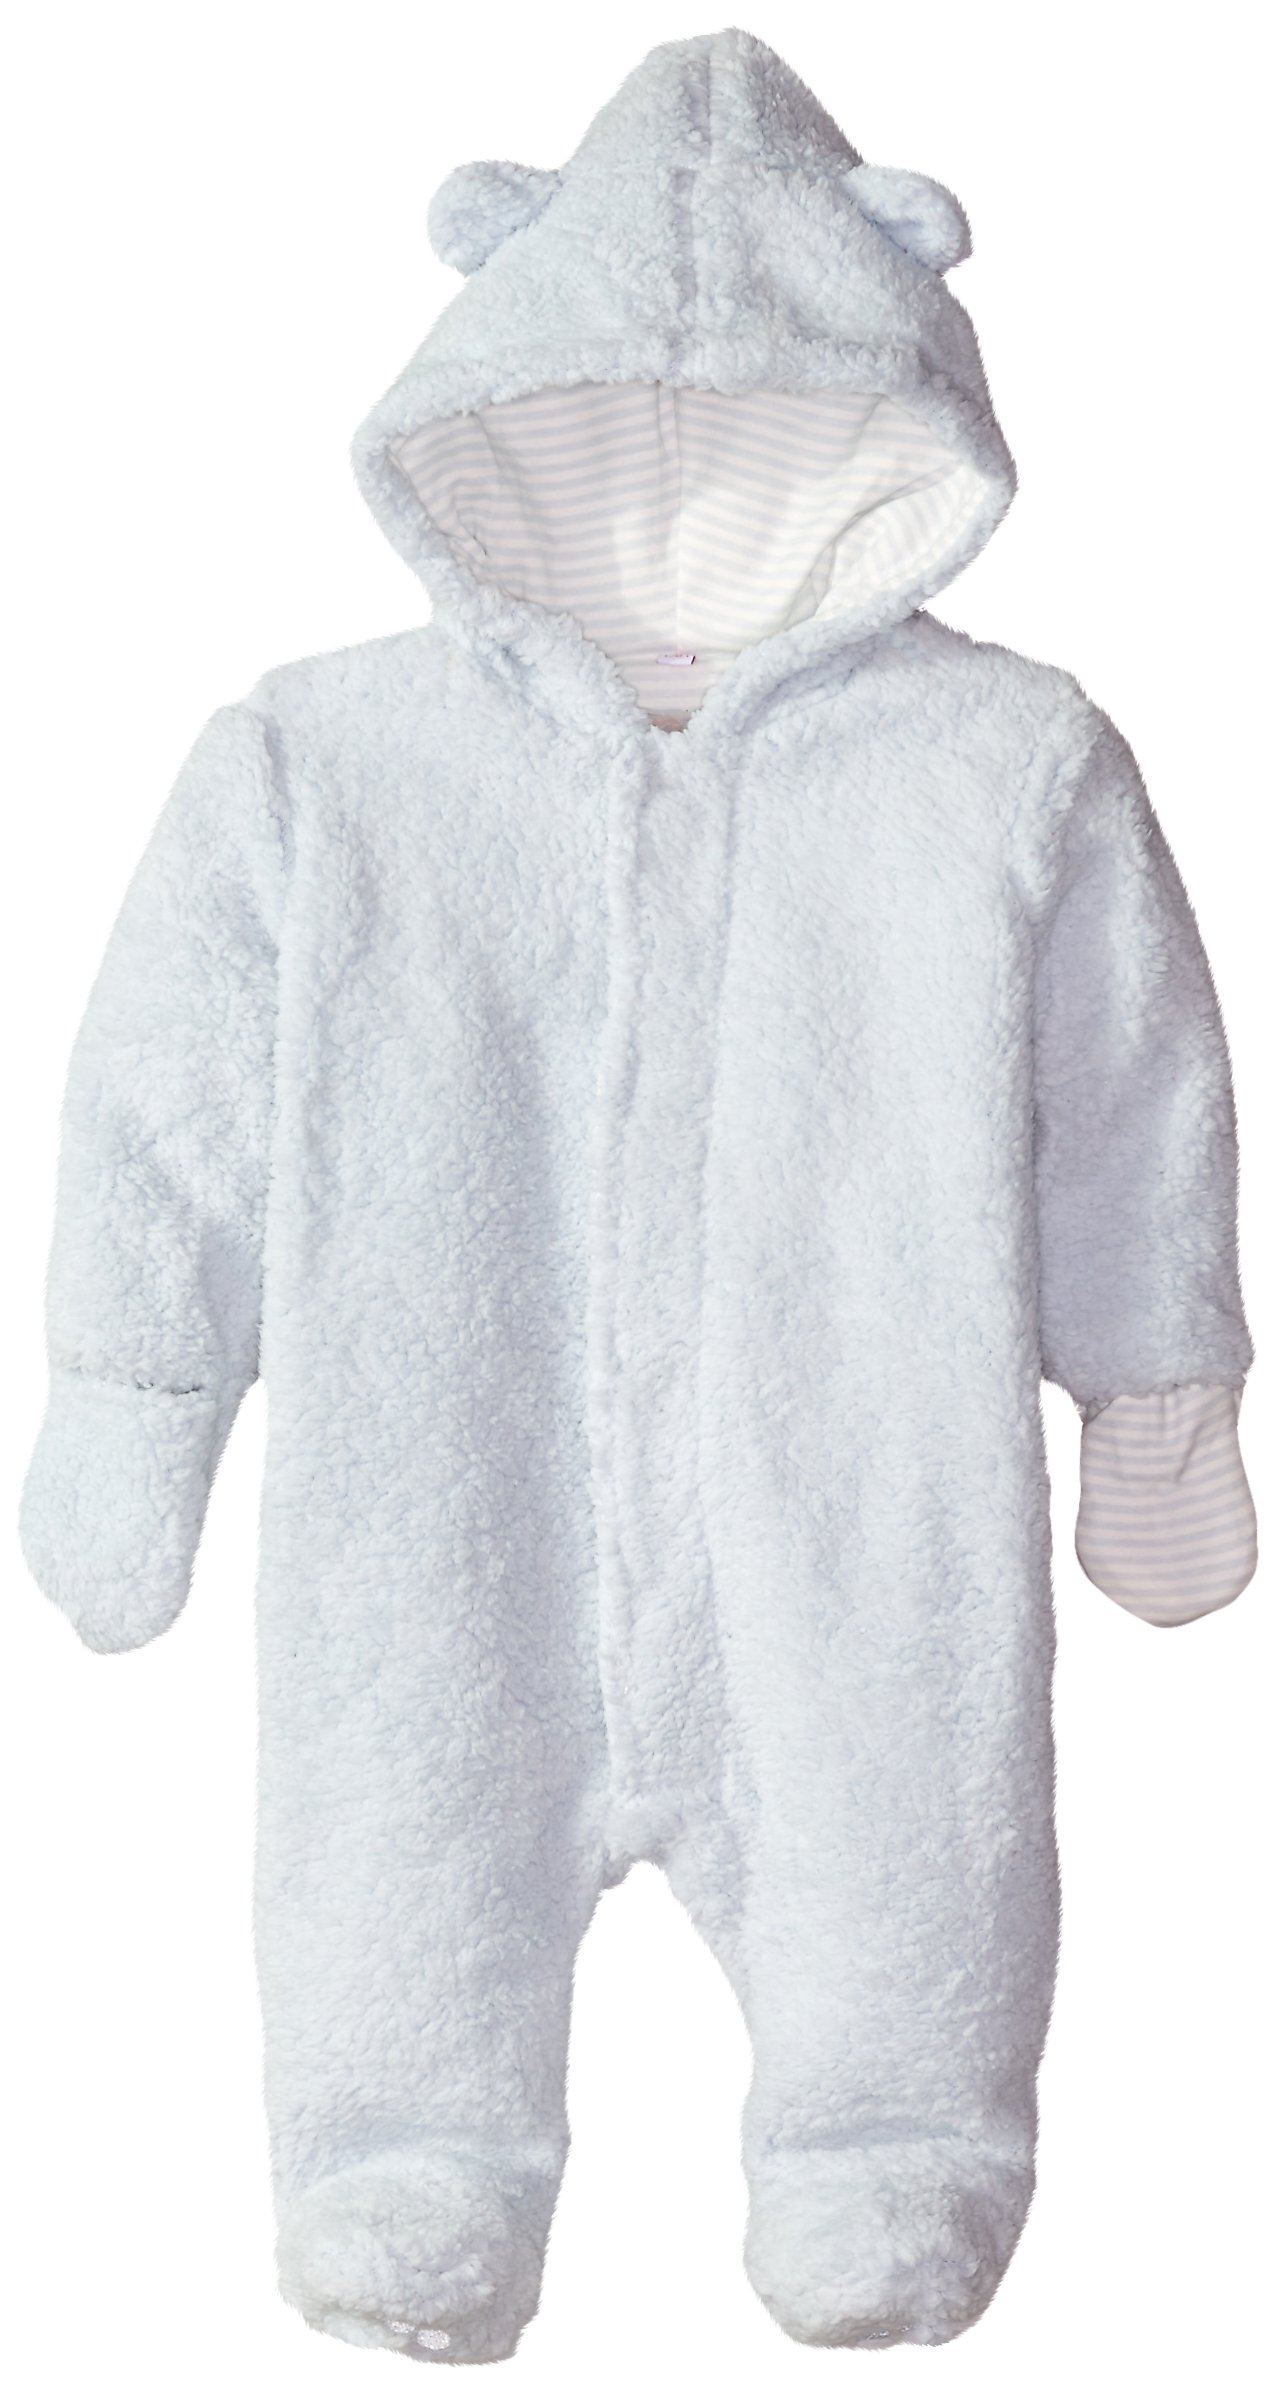 Magnificent Baby Baby Boys' Blue Sorbet Hooded Fleece Pram, New Born by Magnificent Baby